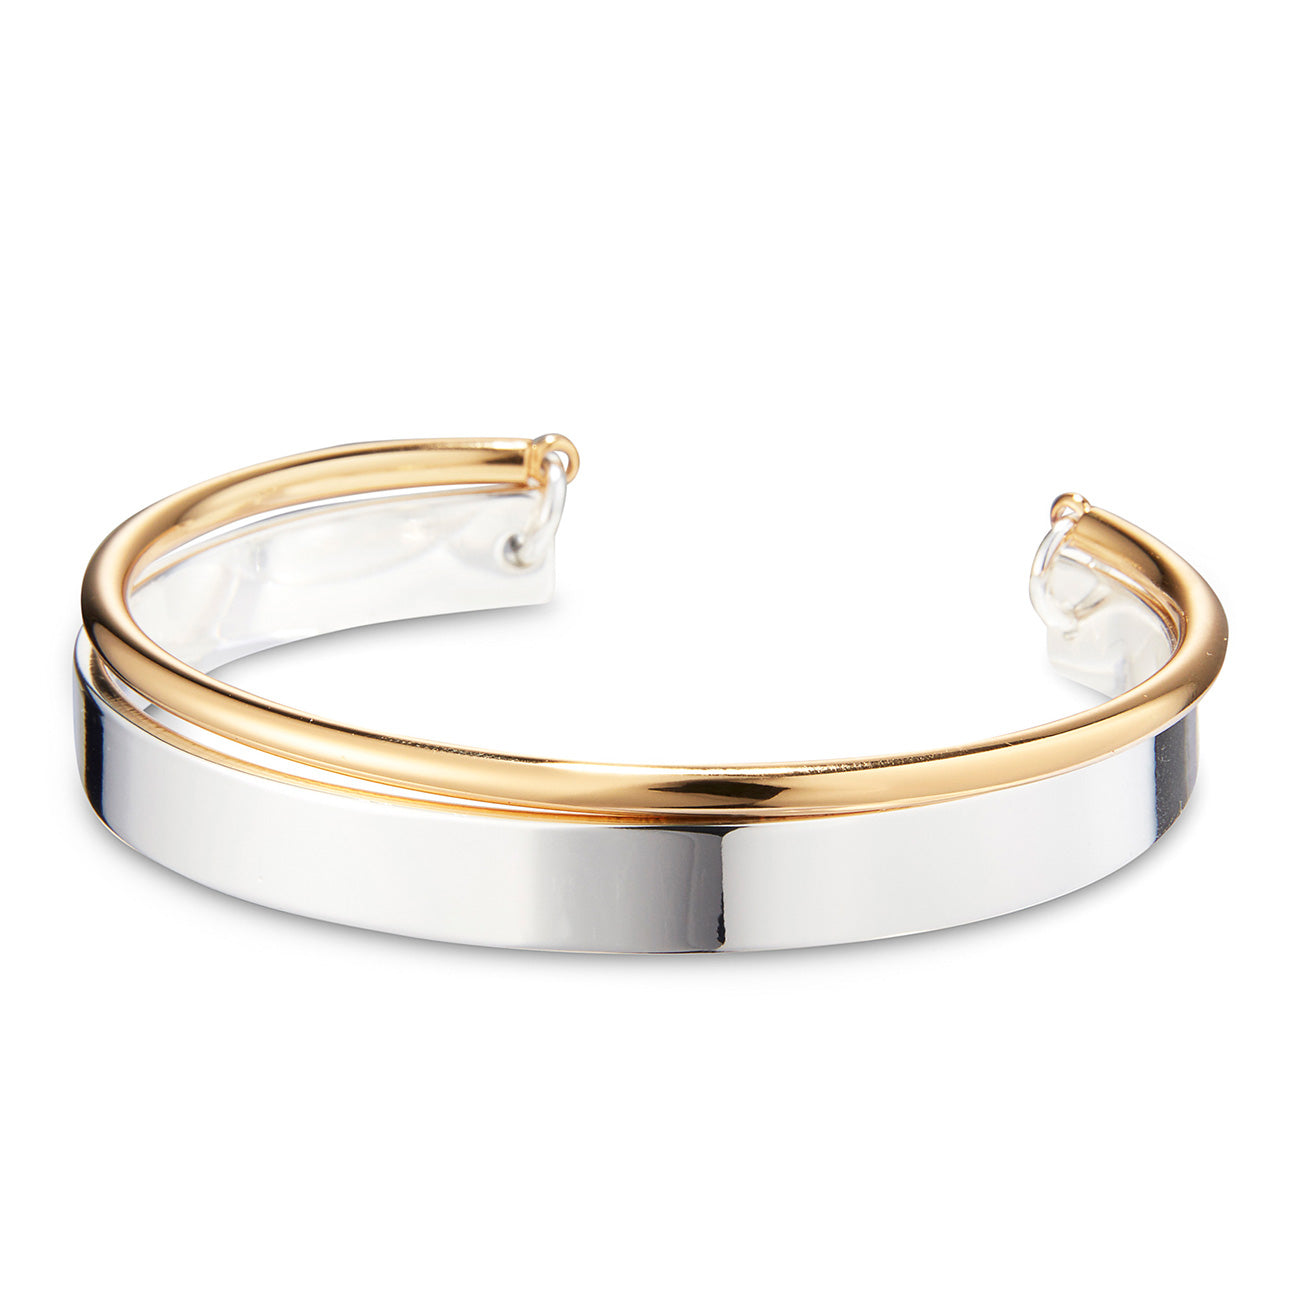 Uma Cuff by Jenny Bird in Two-Tone